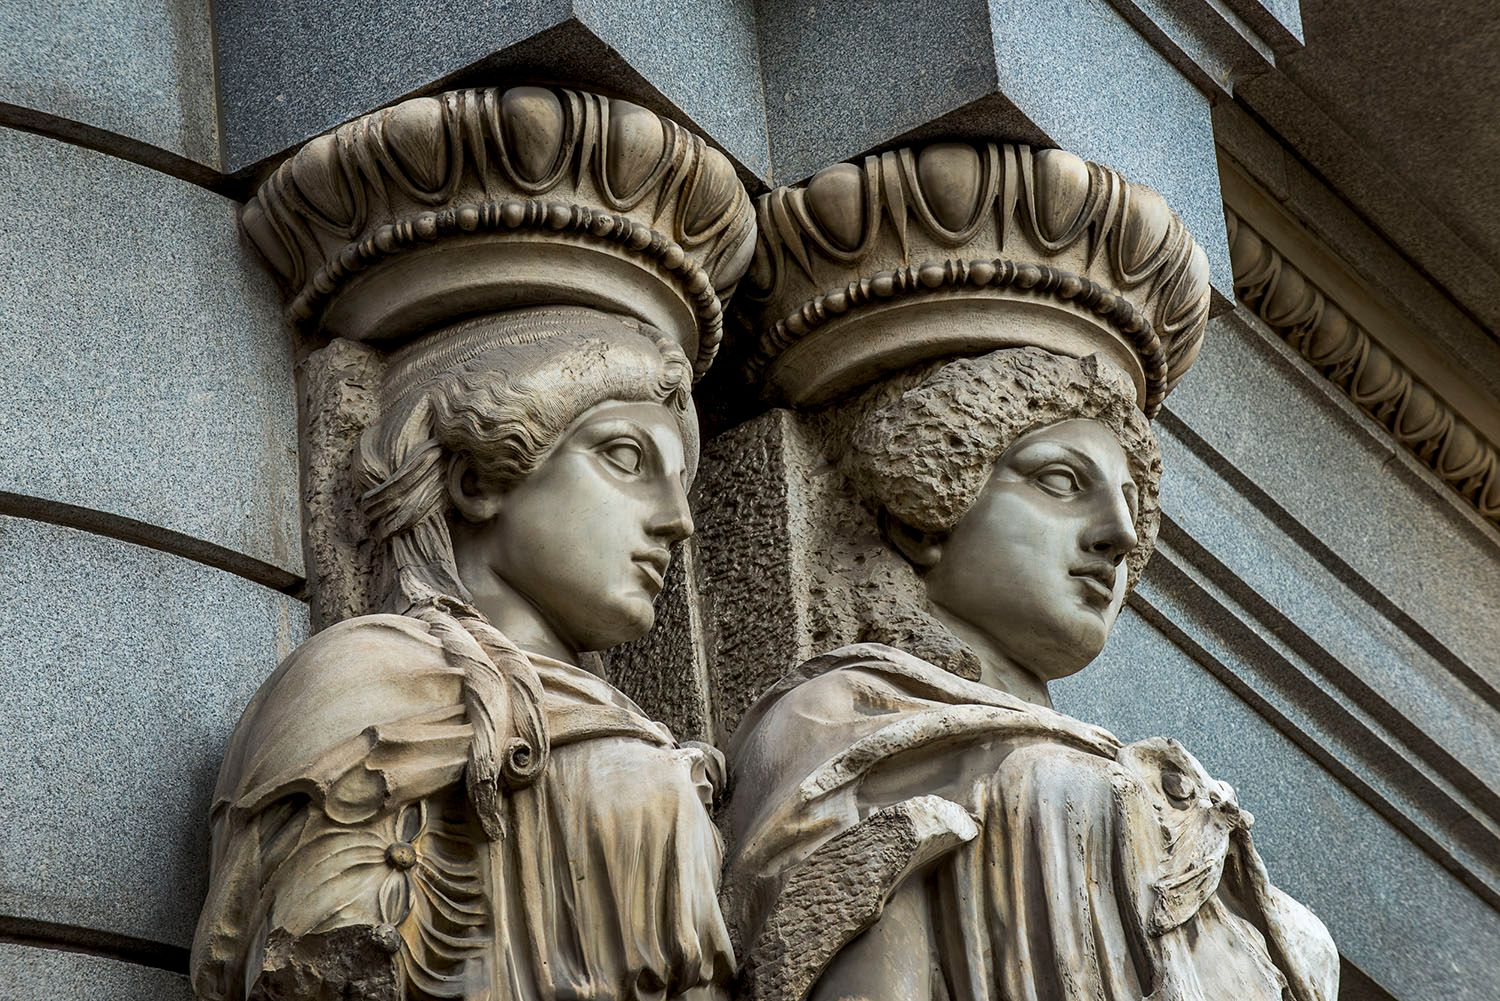 Statues on exterior of building